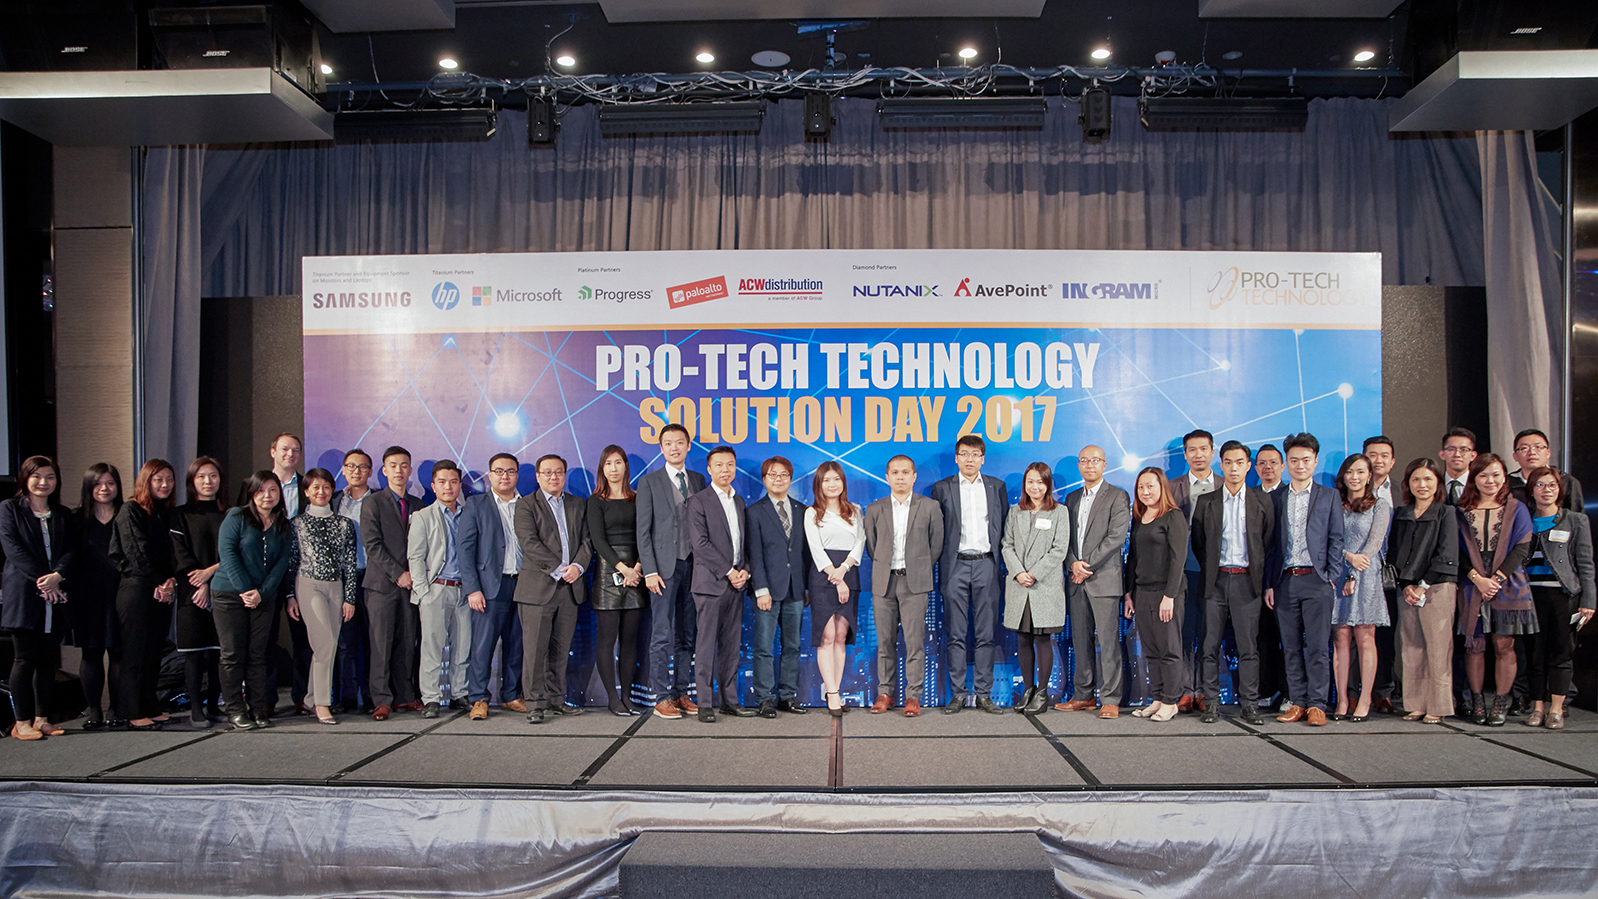 Pro-Tech Technology Solution Day 2017